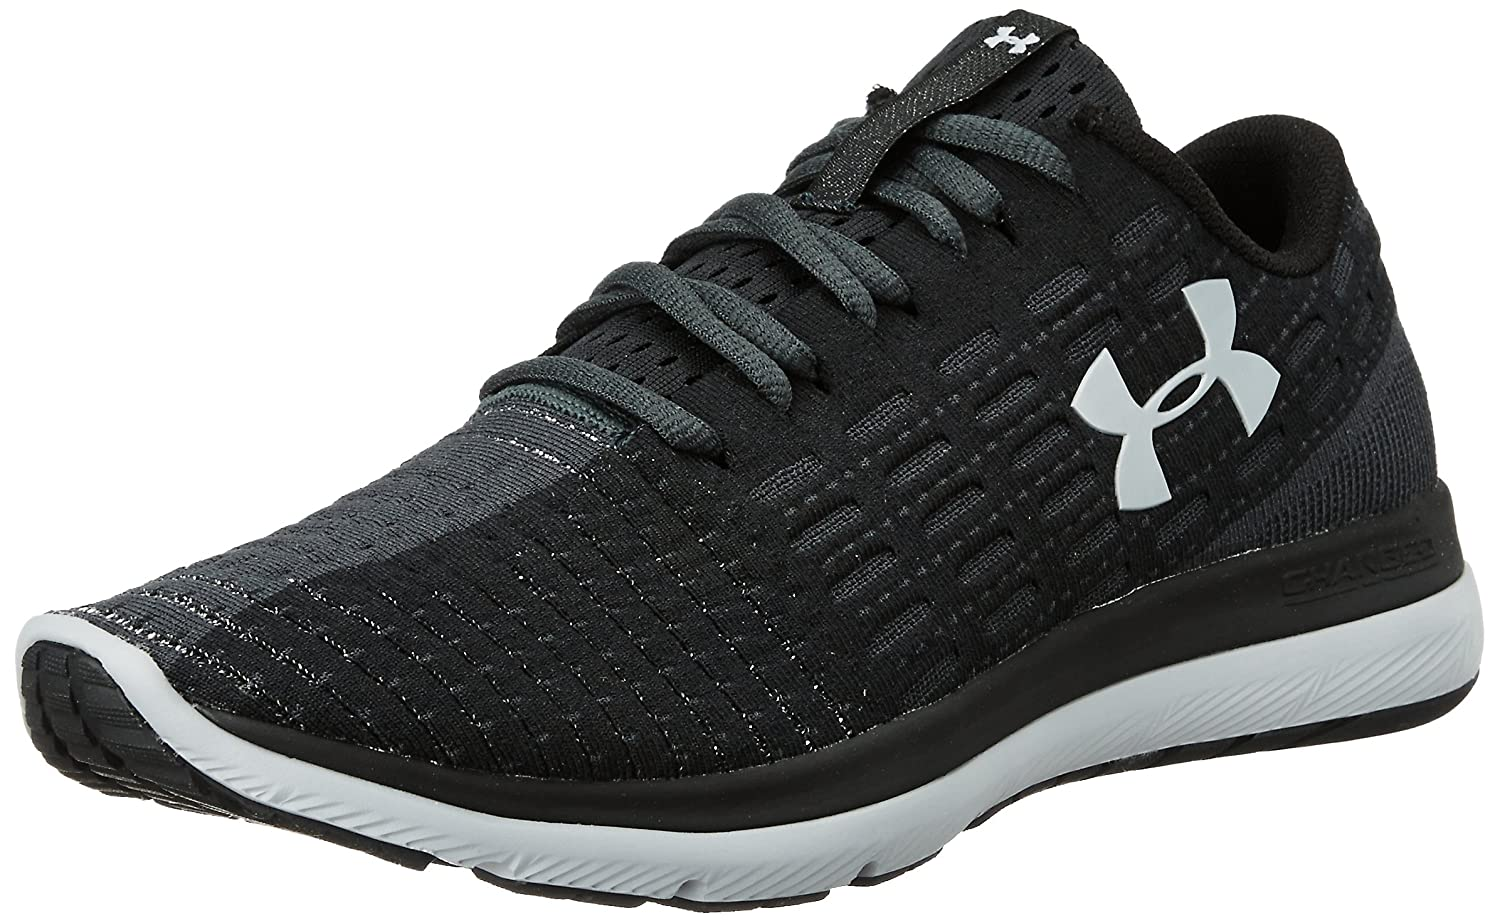 TALLA 46 EU. Under Armour UA Speedchain Zapatillas